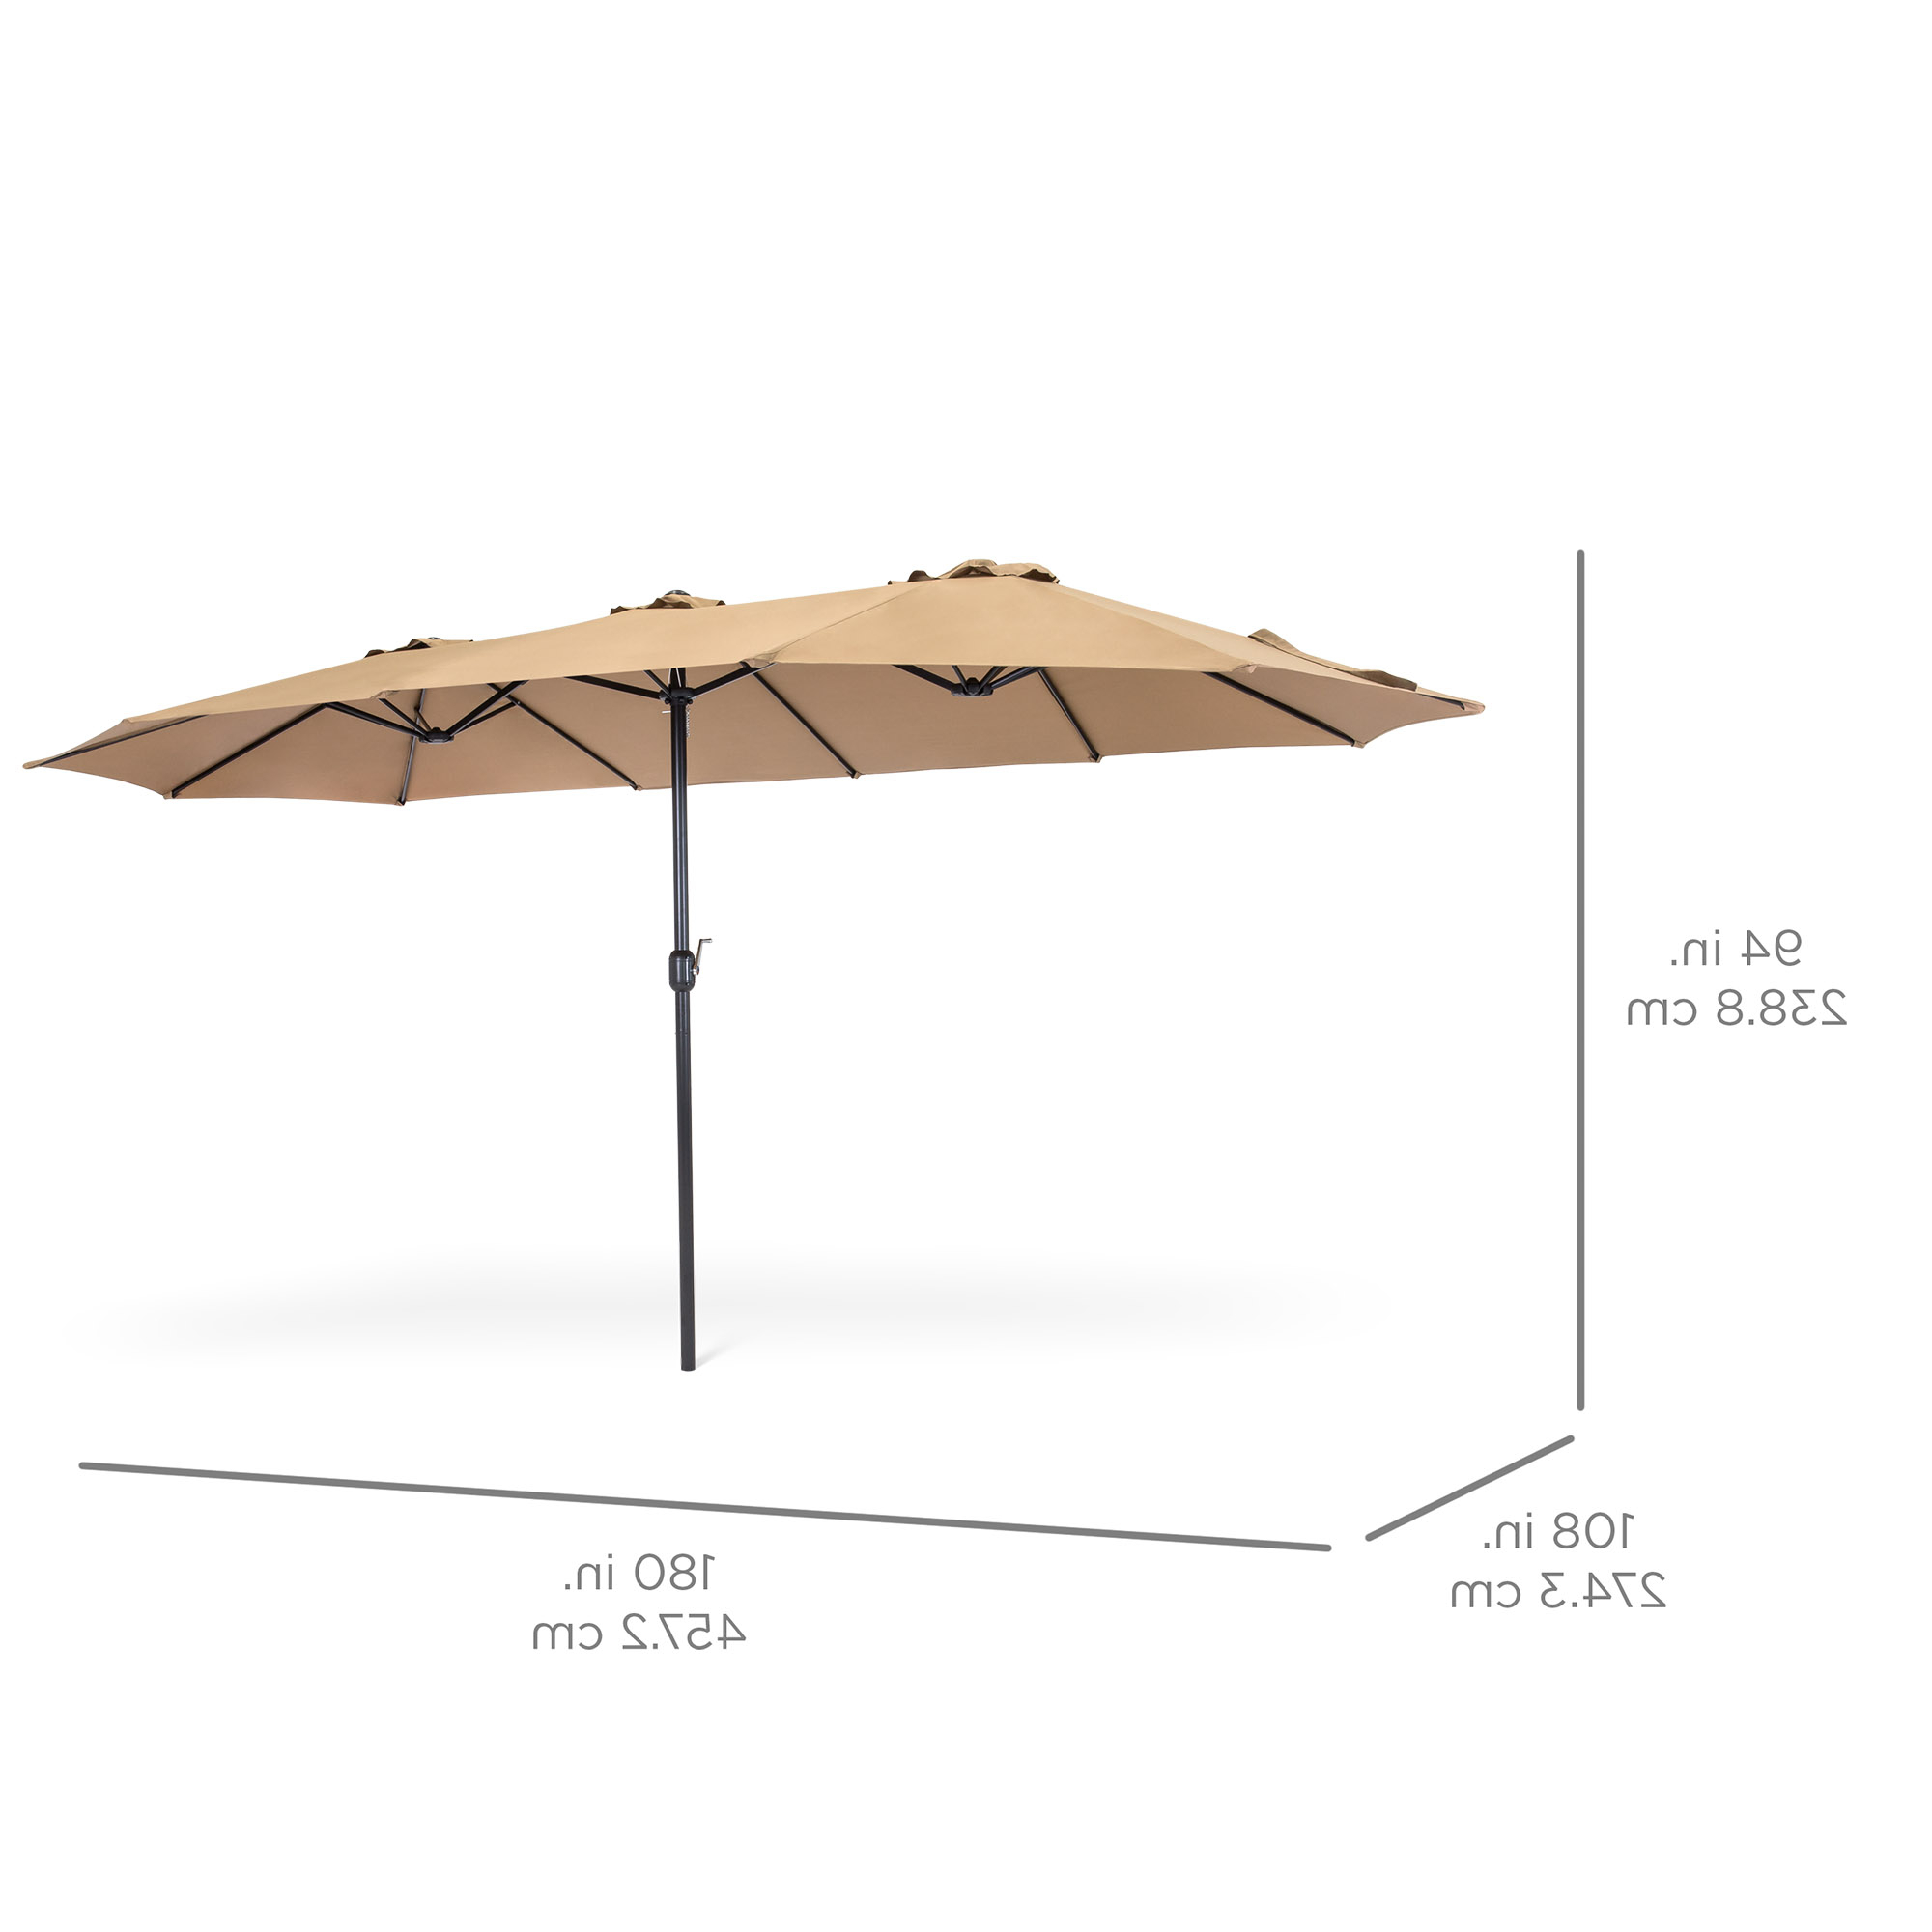 Solid Rectangular Market Umbrellas With Most Recent Best Choice Products 15X9Ft Large Rectangular Outdoor Aluminum Twin Patio  Market Umbrella W/ Crank, Wind Vents For Backyard, Patio, Lawn – Beige (View 15 of 20)